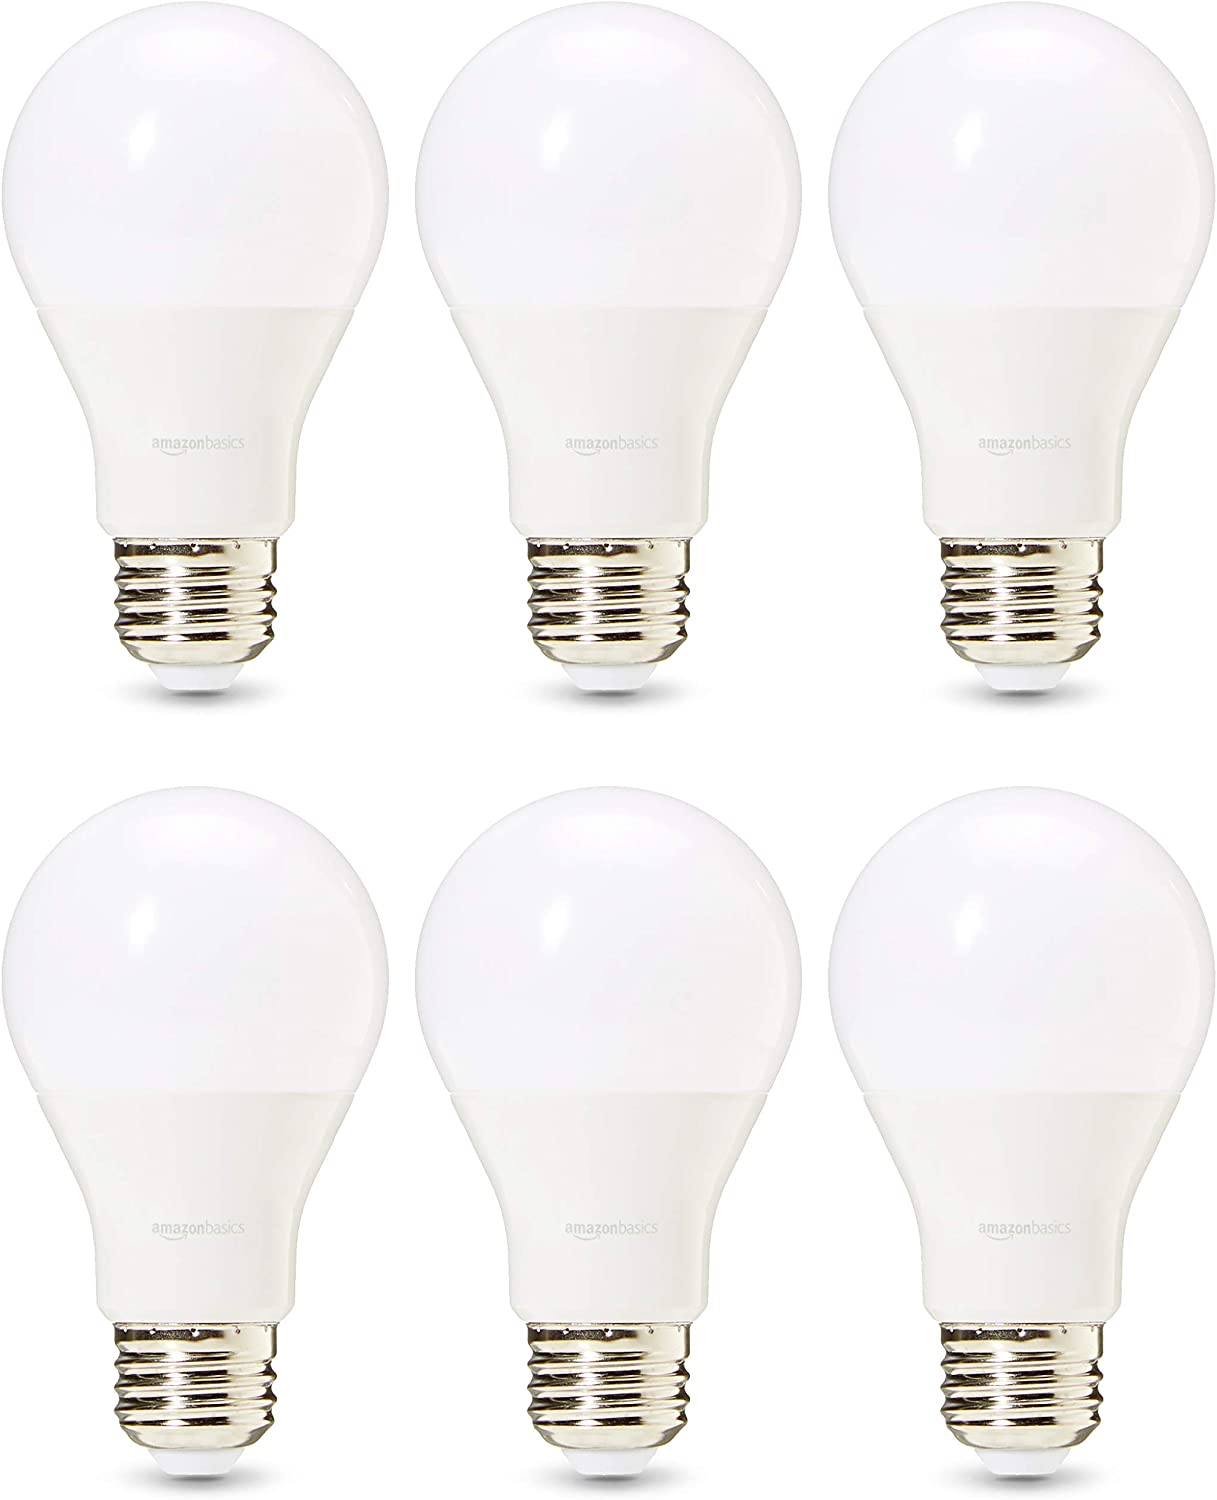 AmazonBasics Commercial Grade 25,000 Hour LED Light Bulb | 75-Watt Equivalent, A19, Soft White, Dimmable, 6-Pack